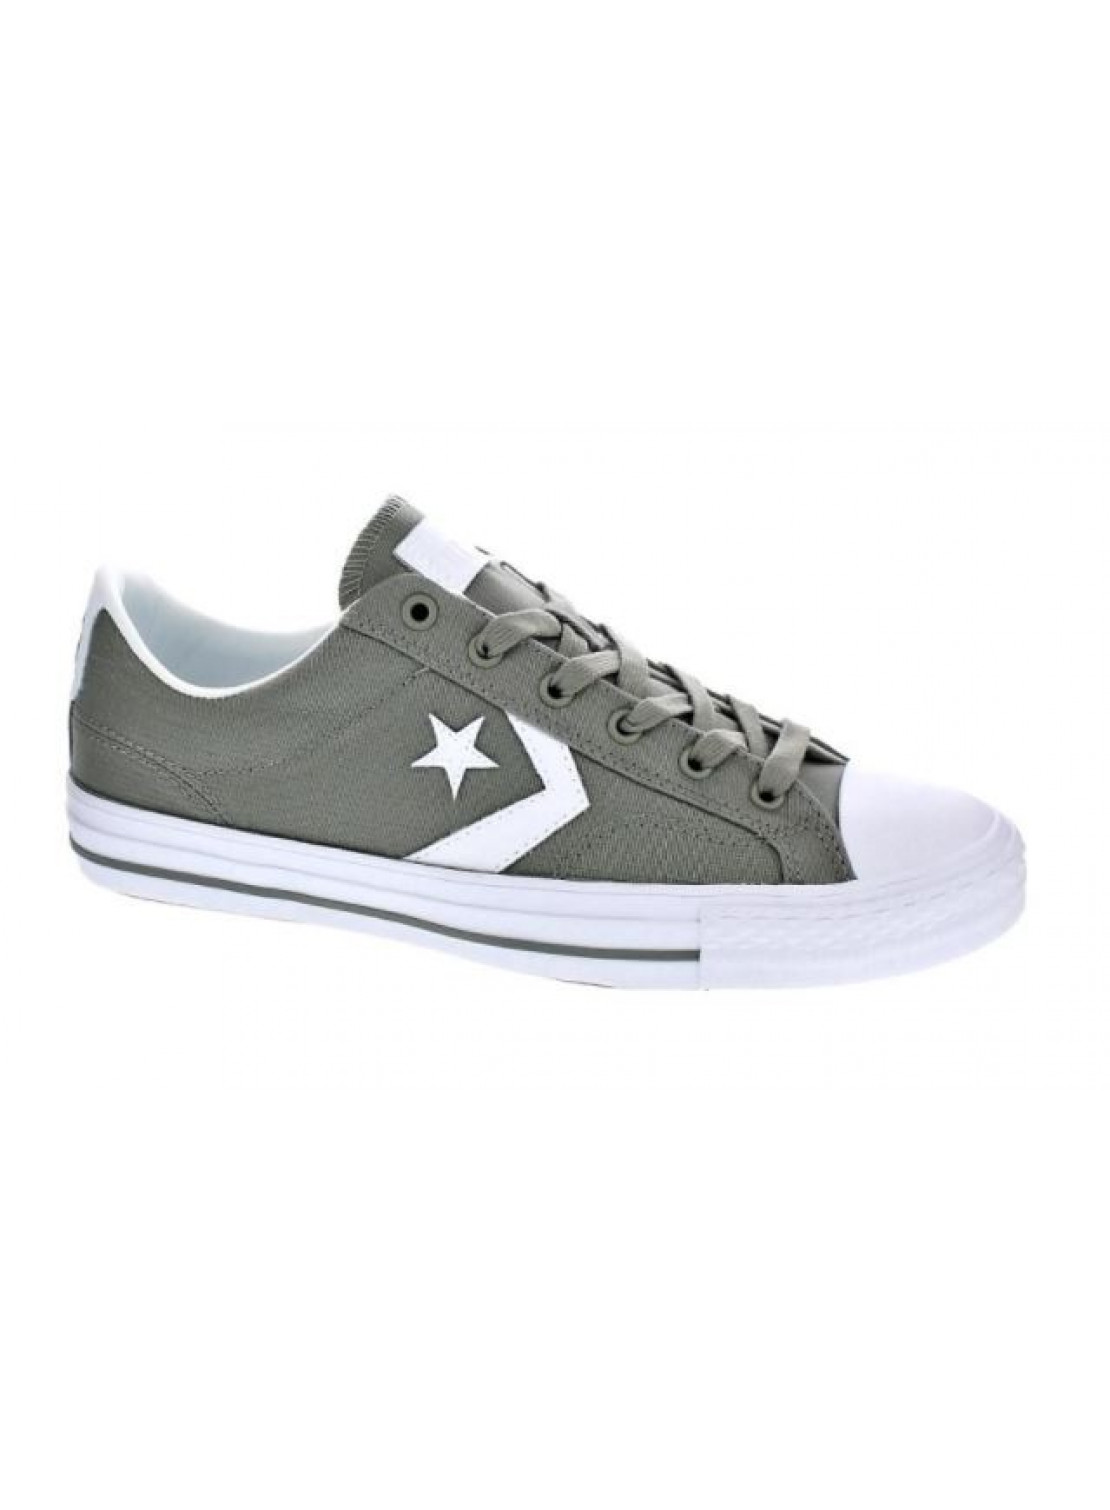 converse all star player hombre